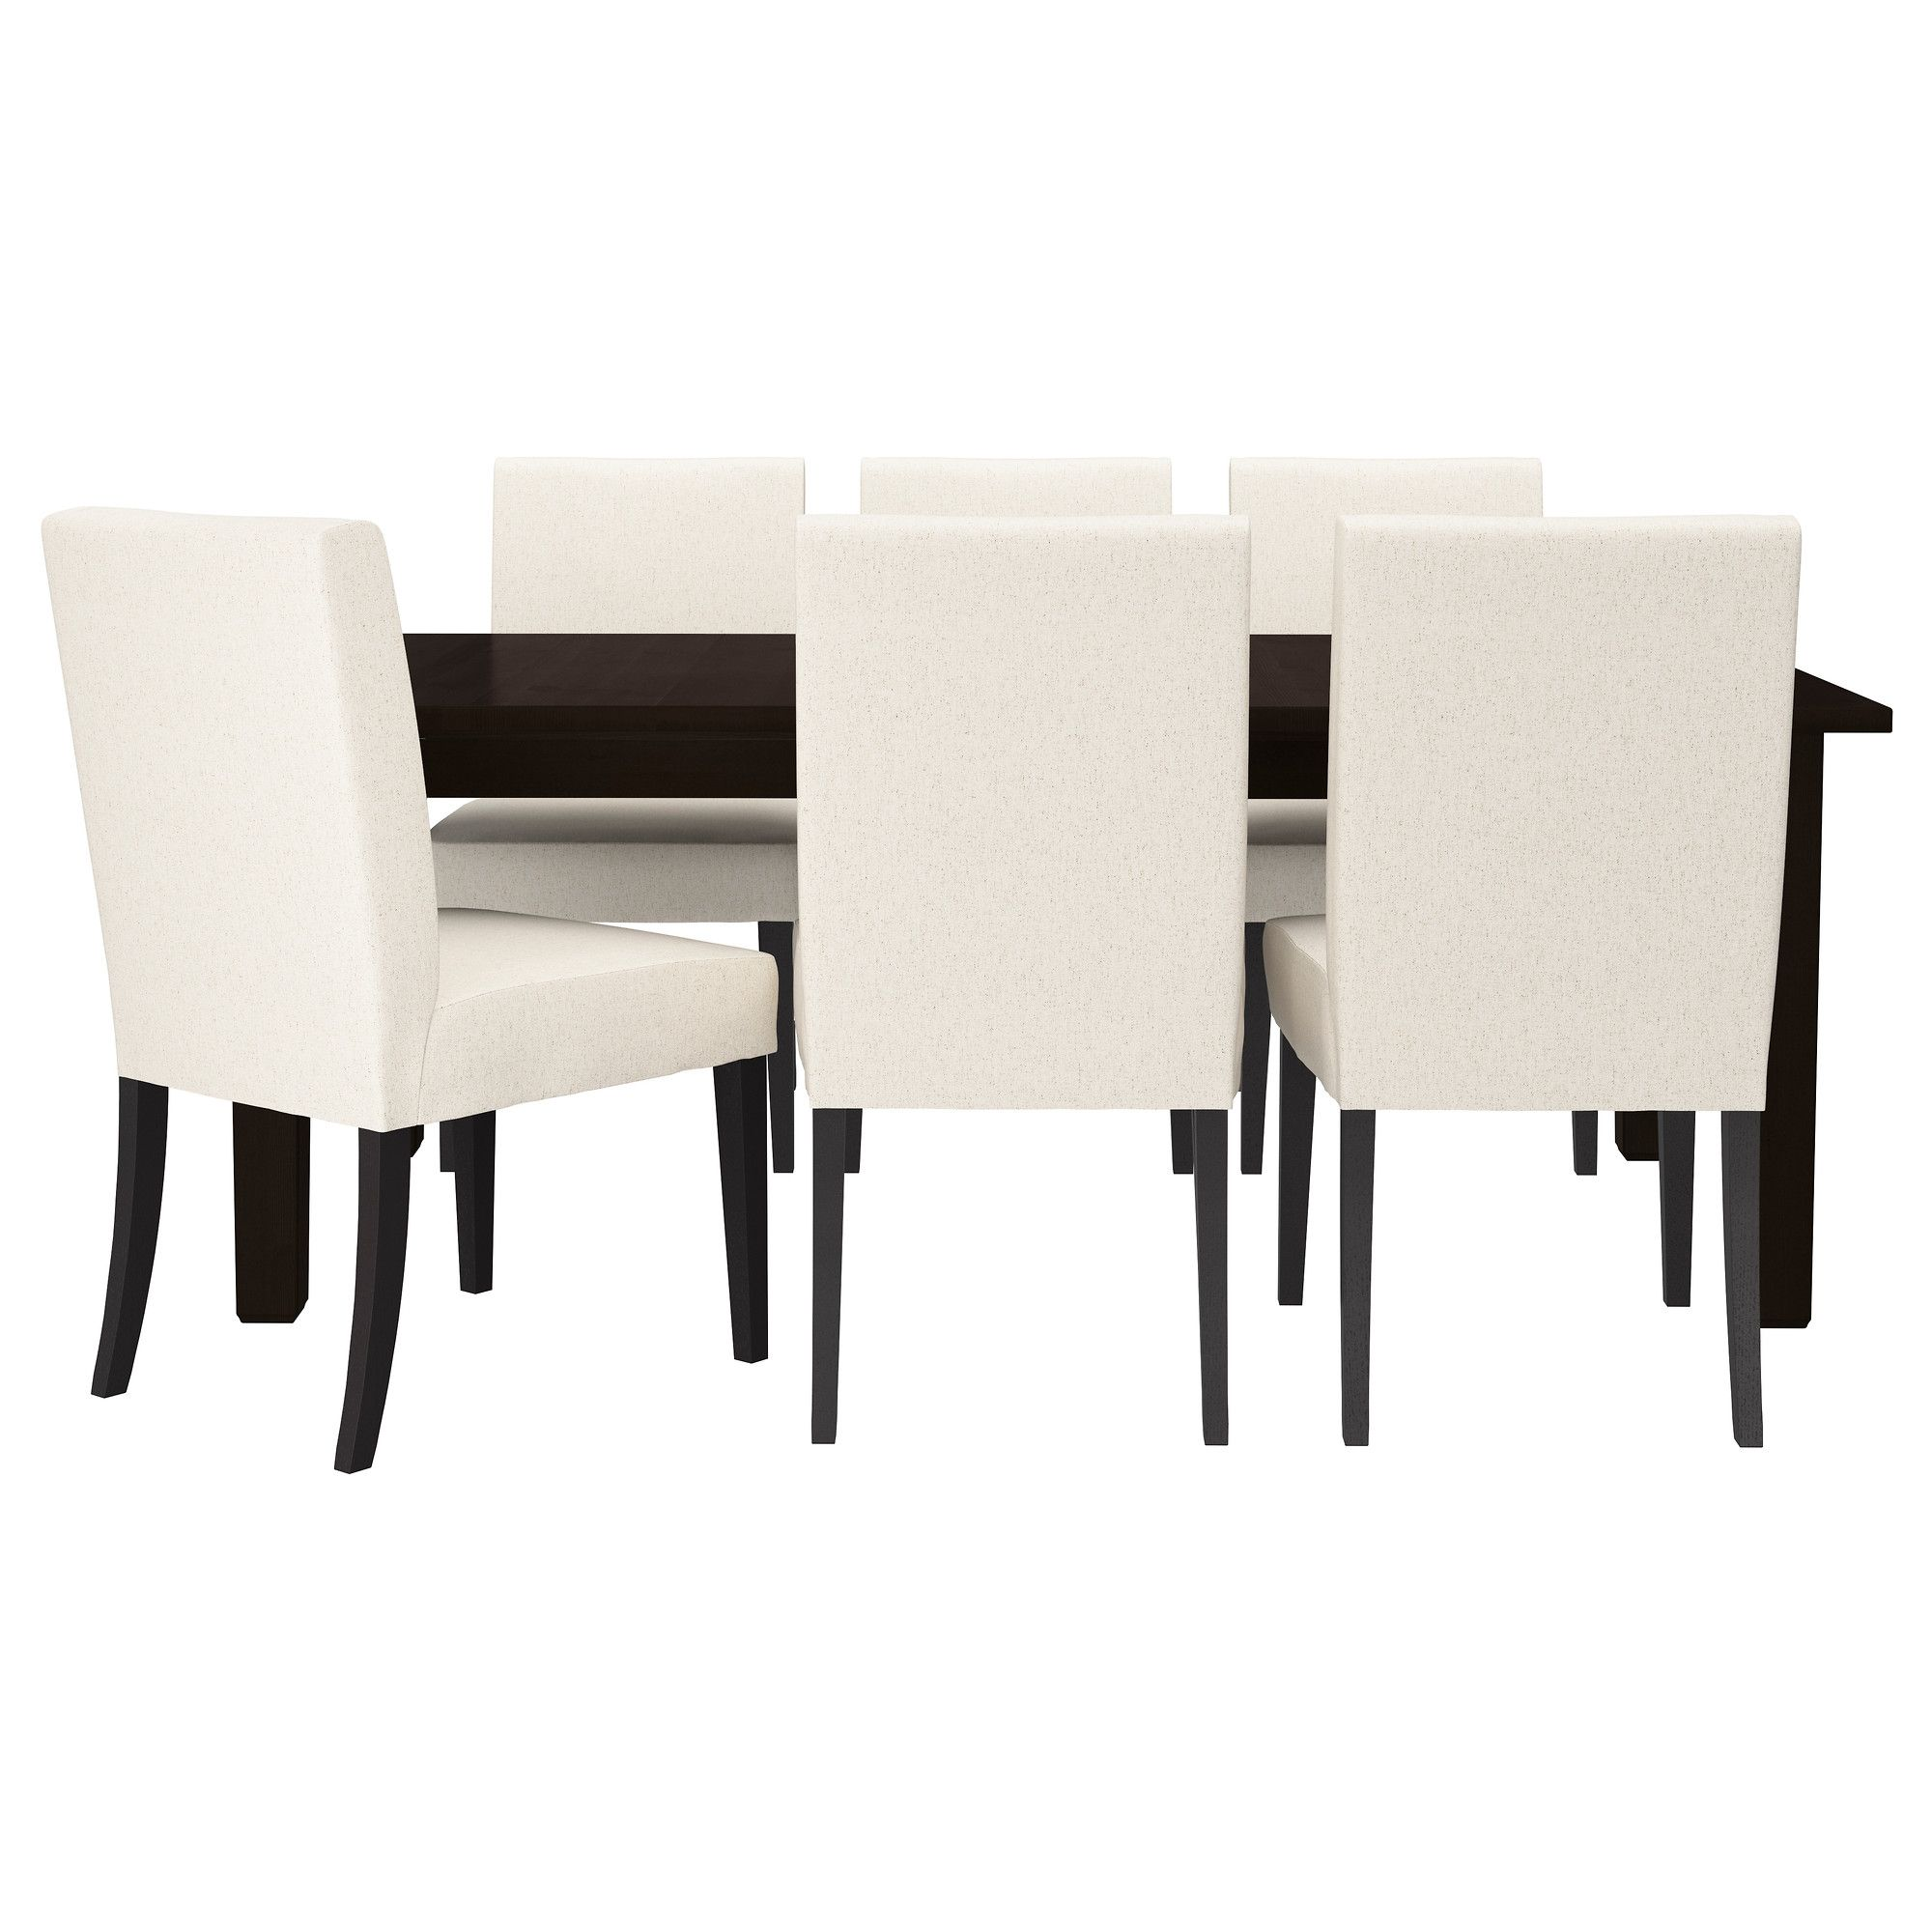 Stornäs  Henriksdal Table And 6 Chairs Brownblack Linneryd Gorgeous Ikea Dining Room Chairs Sale 2018